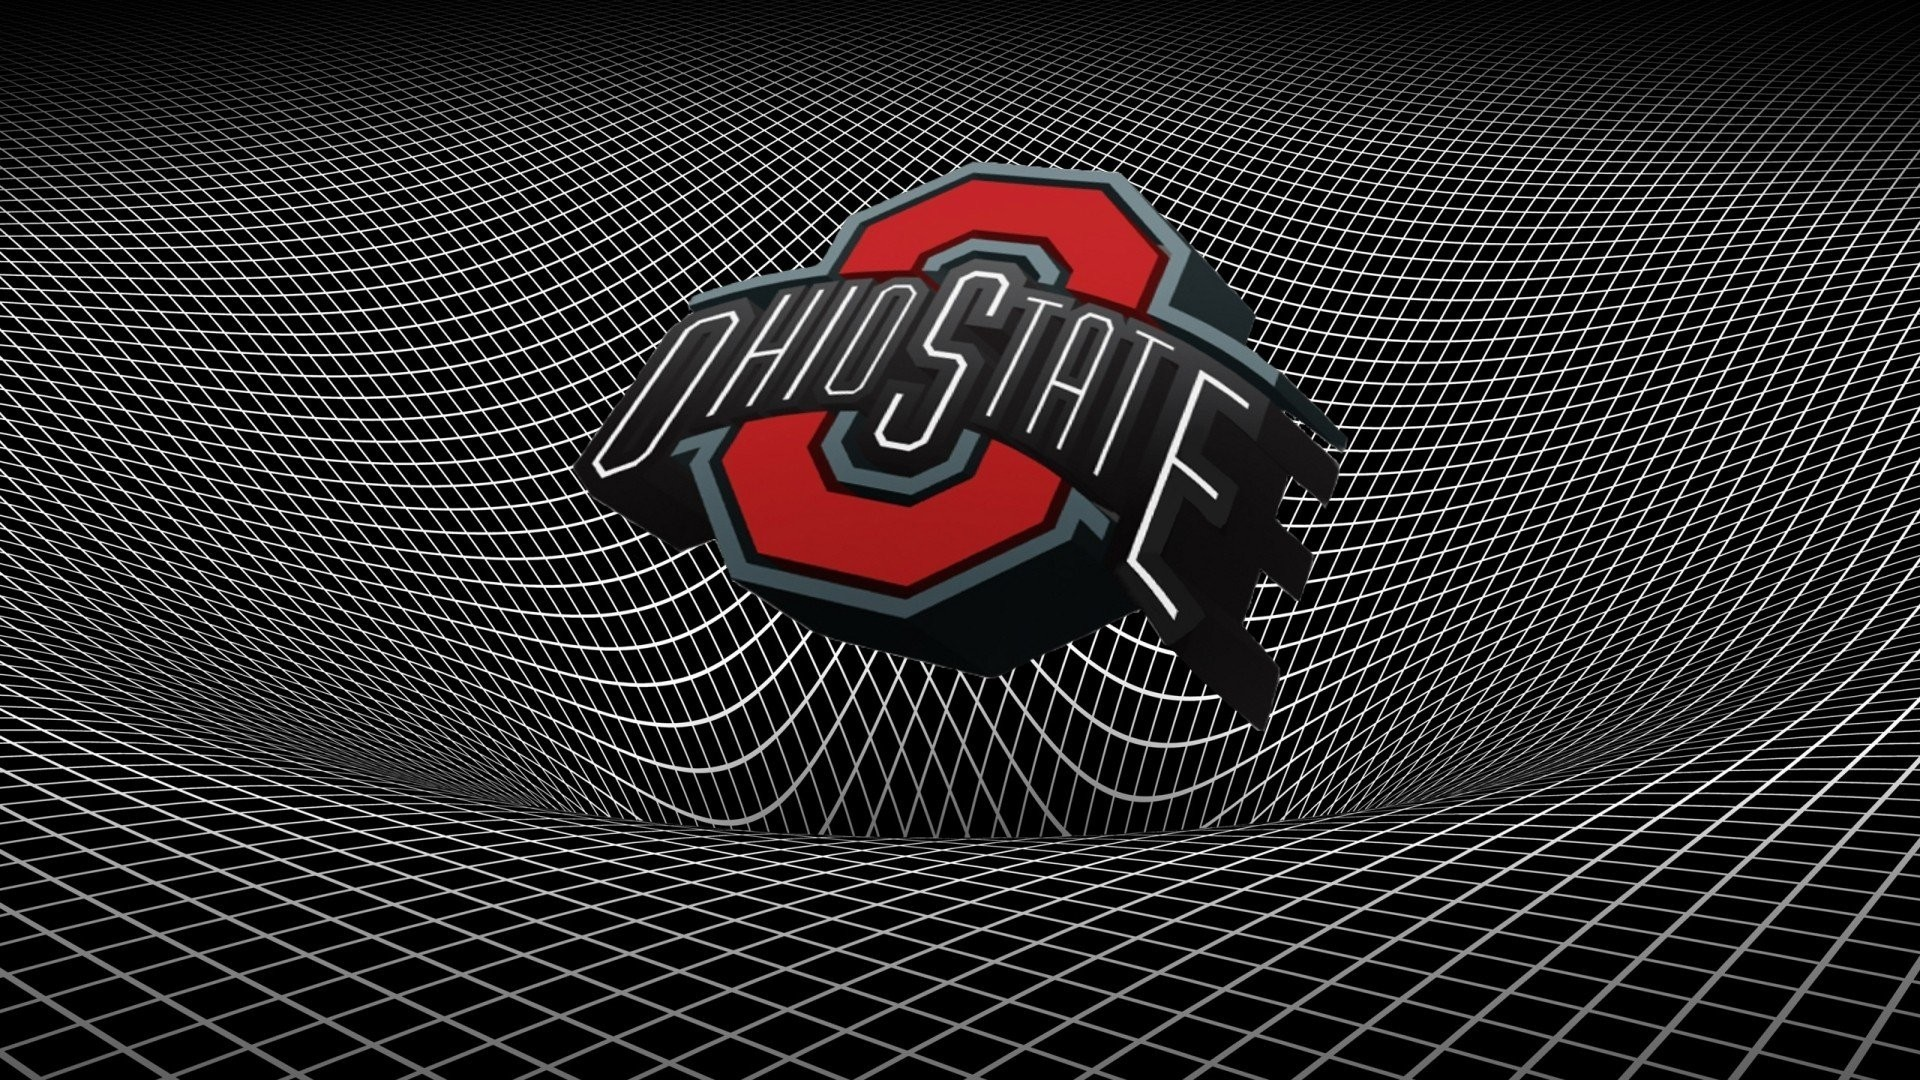 1920x1080 Ohio State Buckeyes Football Wallpapers Wallpaper HD Source A St Logo By Salvationalizm 1920 X 1080